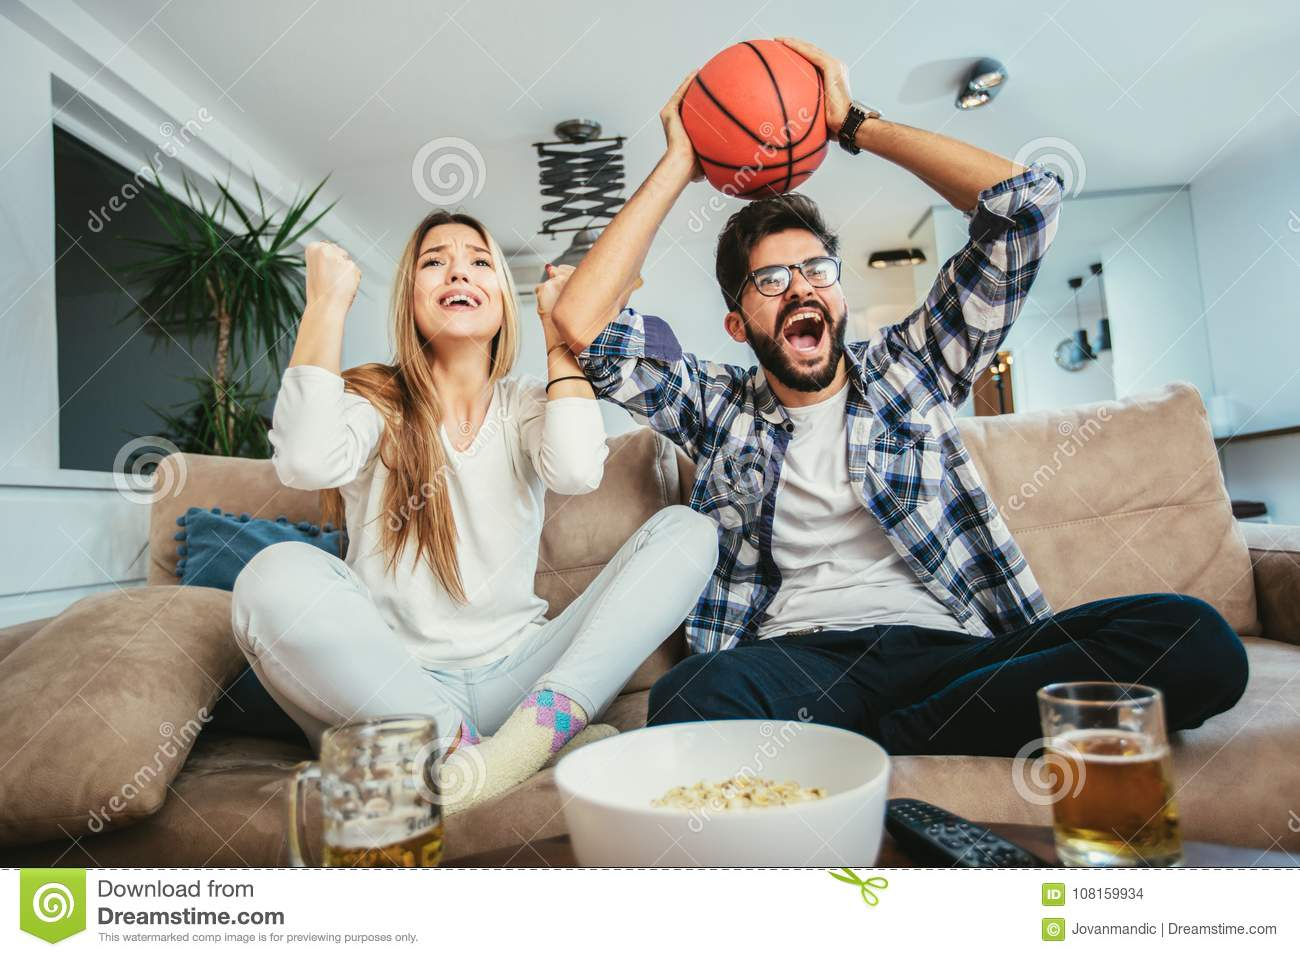 1 184 Basketball Couple Photos Free Royalty Free Stock Photos From Dreamstime